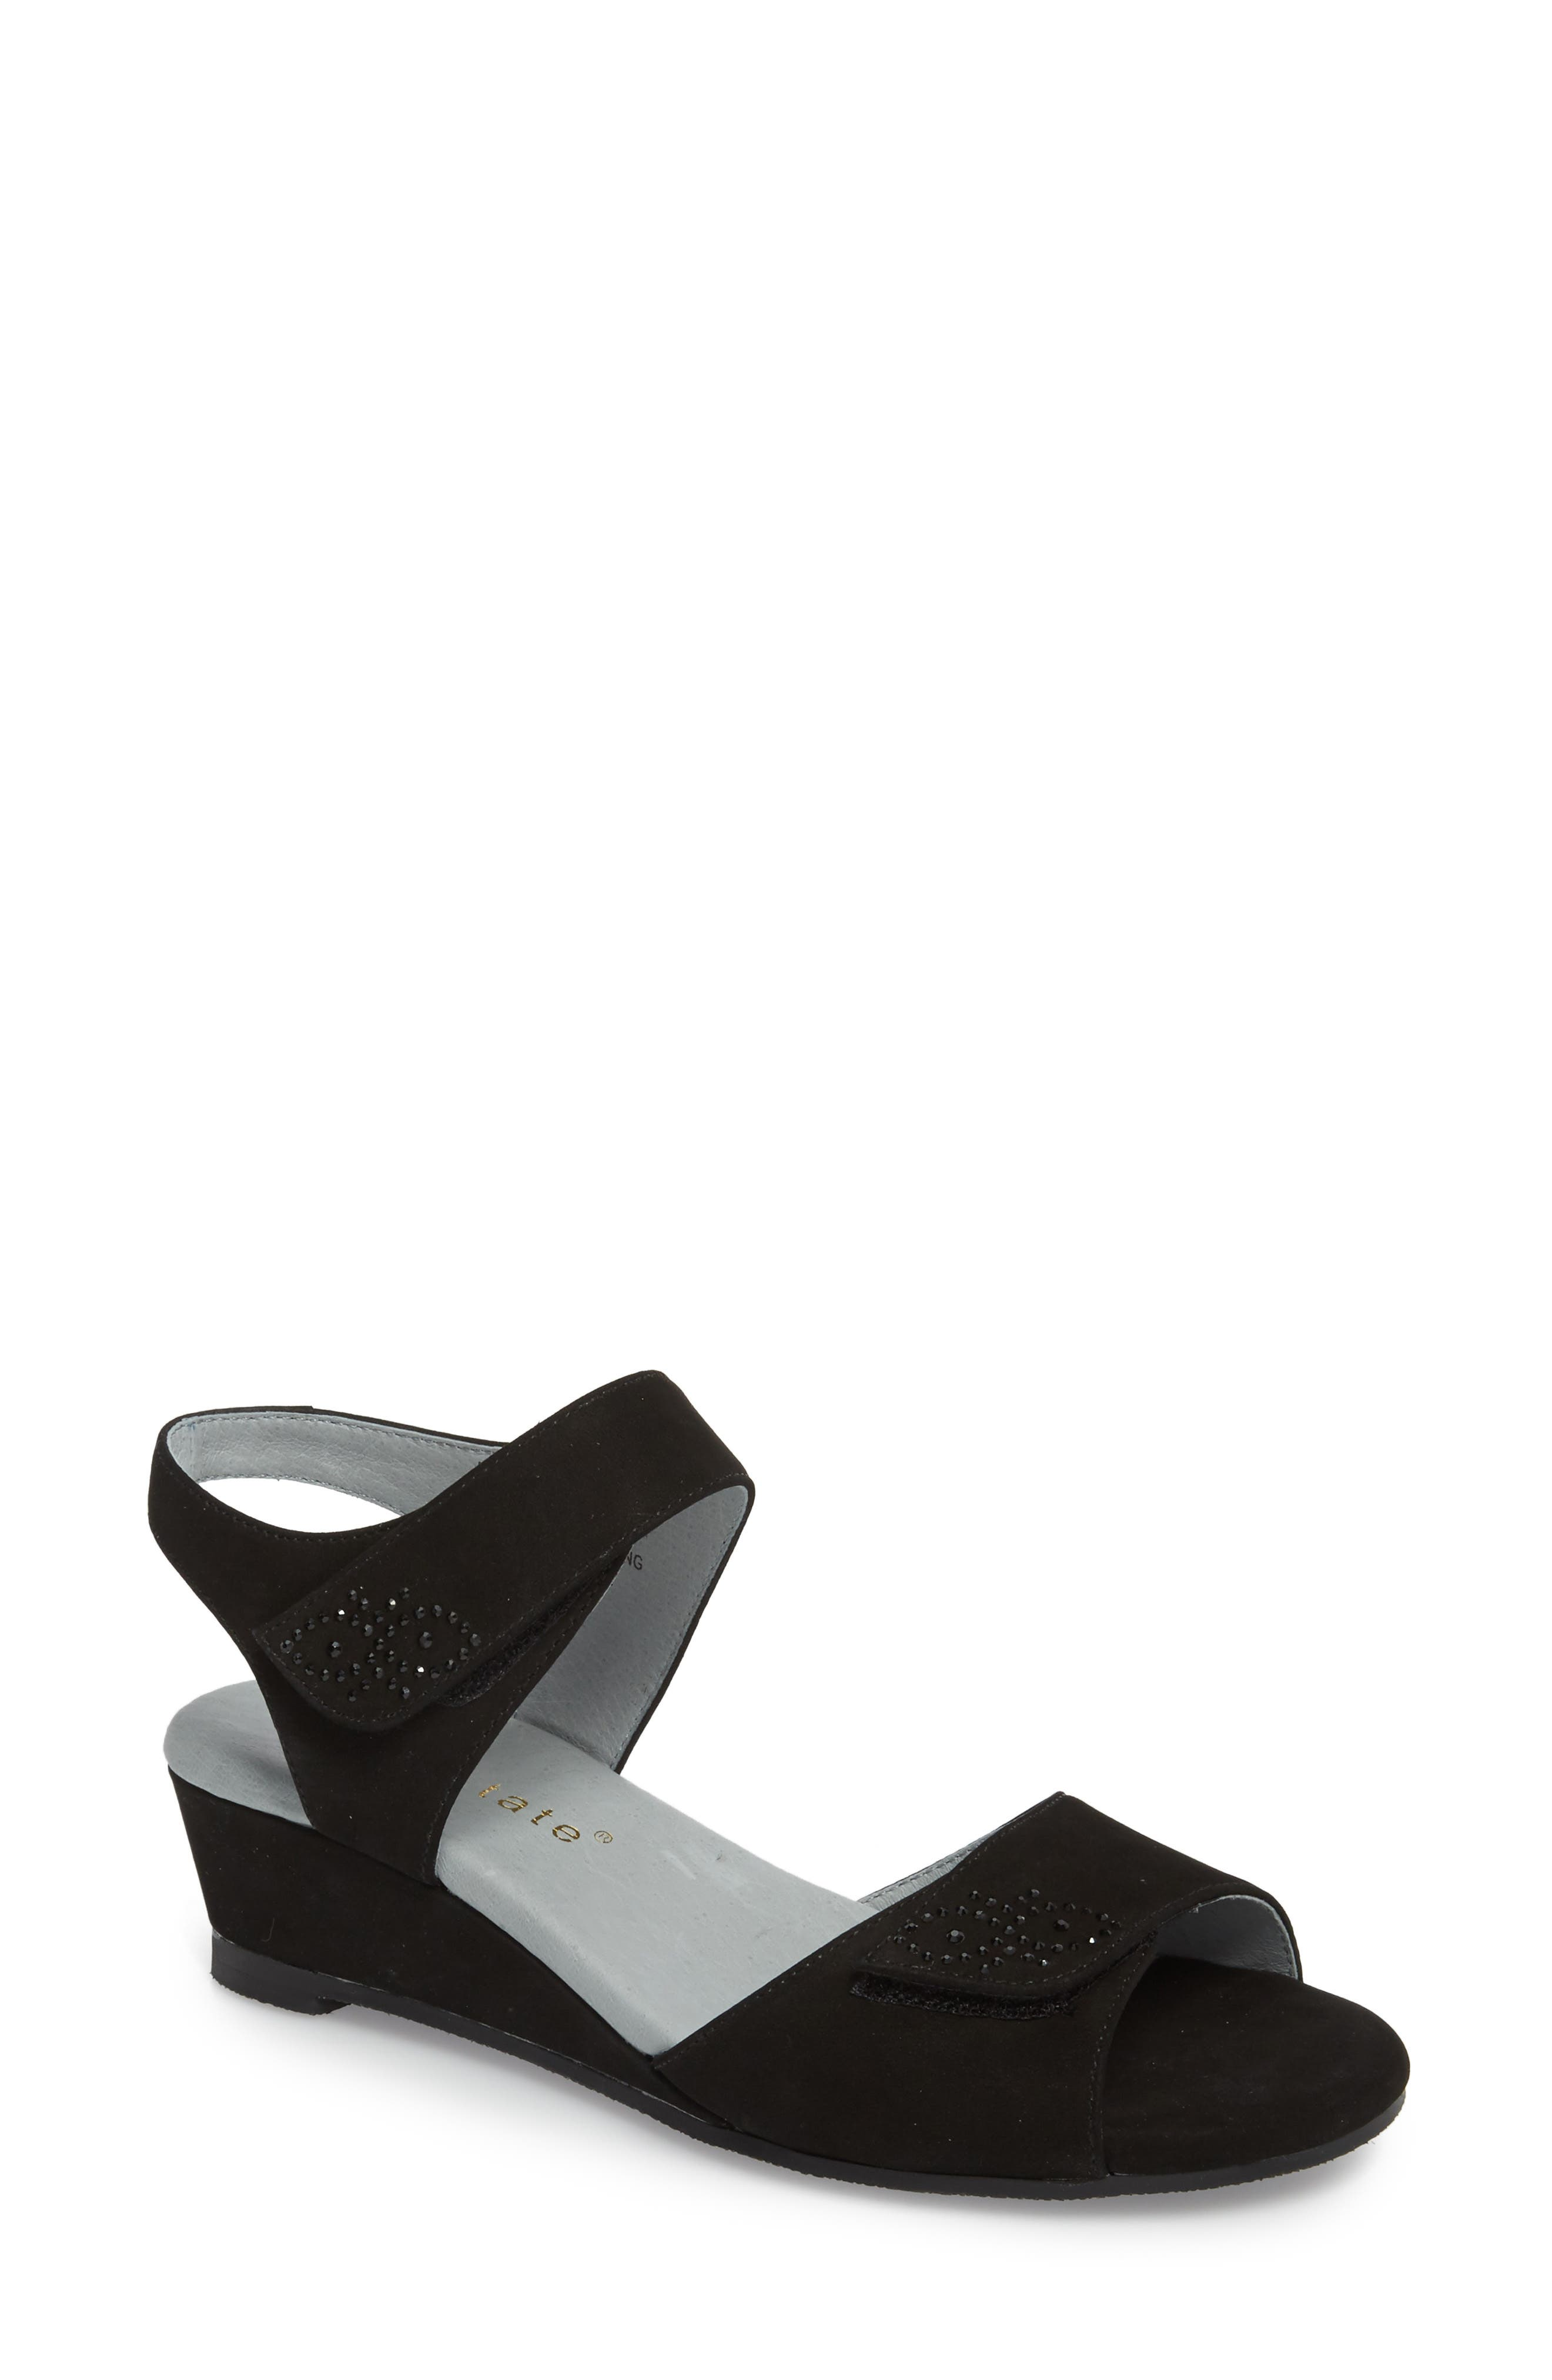 Queen Embellished Wedge Sandal,                             Main thumbnail 1, color,                             BLACK NUBUCK